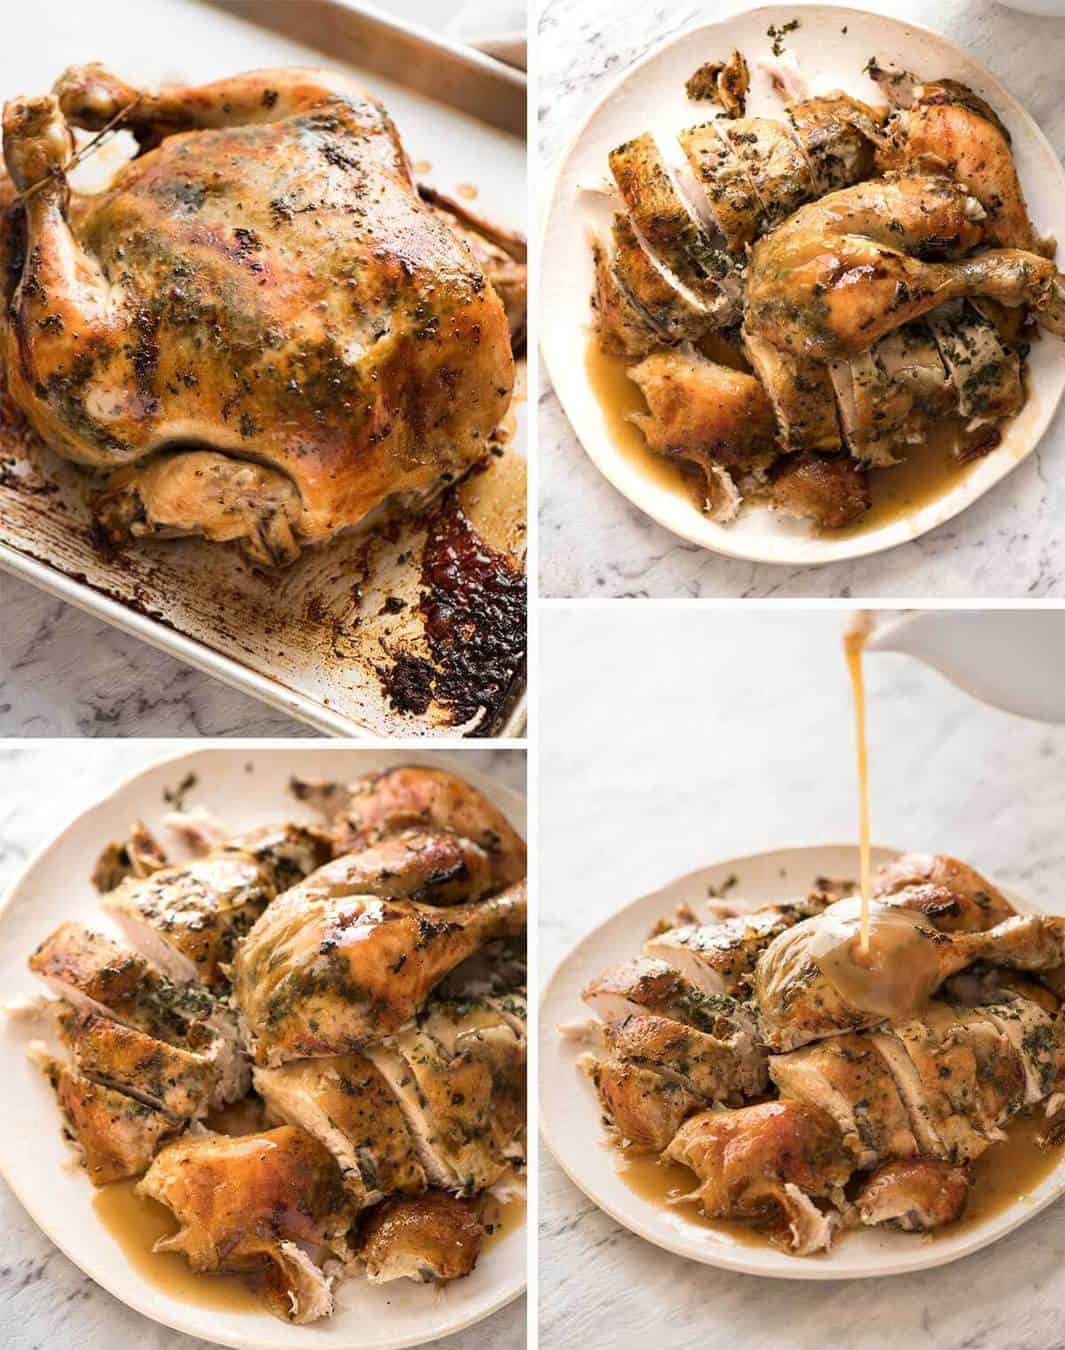 Slow Cooker Garlic Herb Butter Roast Chicken - garlic herb butter slathered under the skin, then slow cooked to perfection, accompanied with a stunning BUTTER GRAVY! www.recipetineats.com